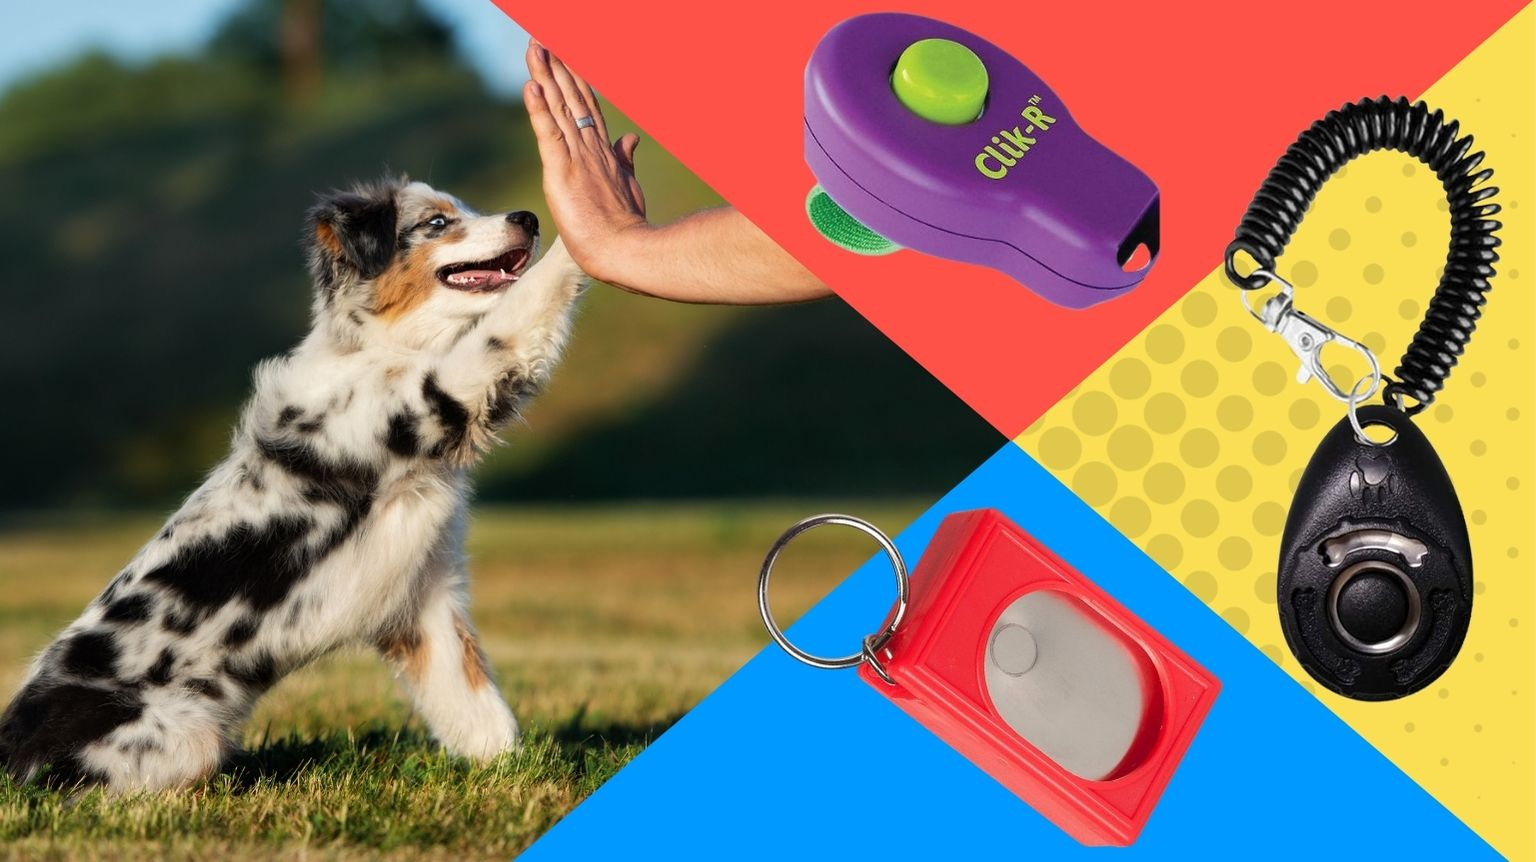 Australian Shepard with dog training clickers